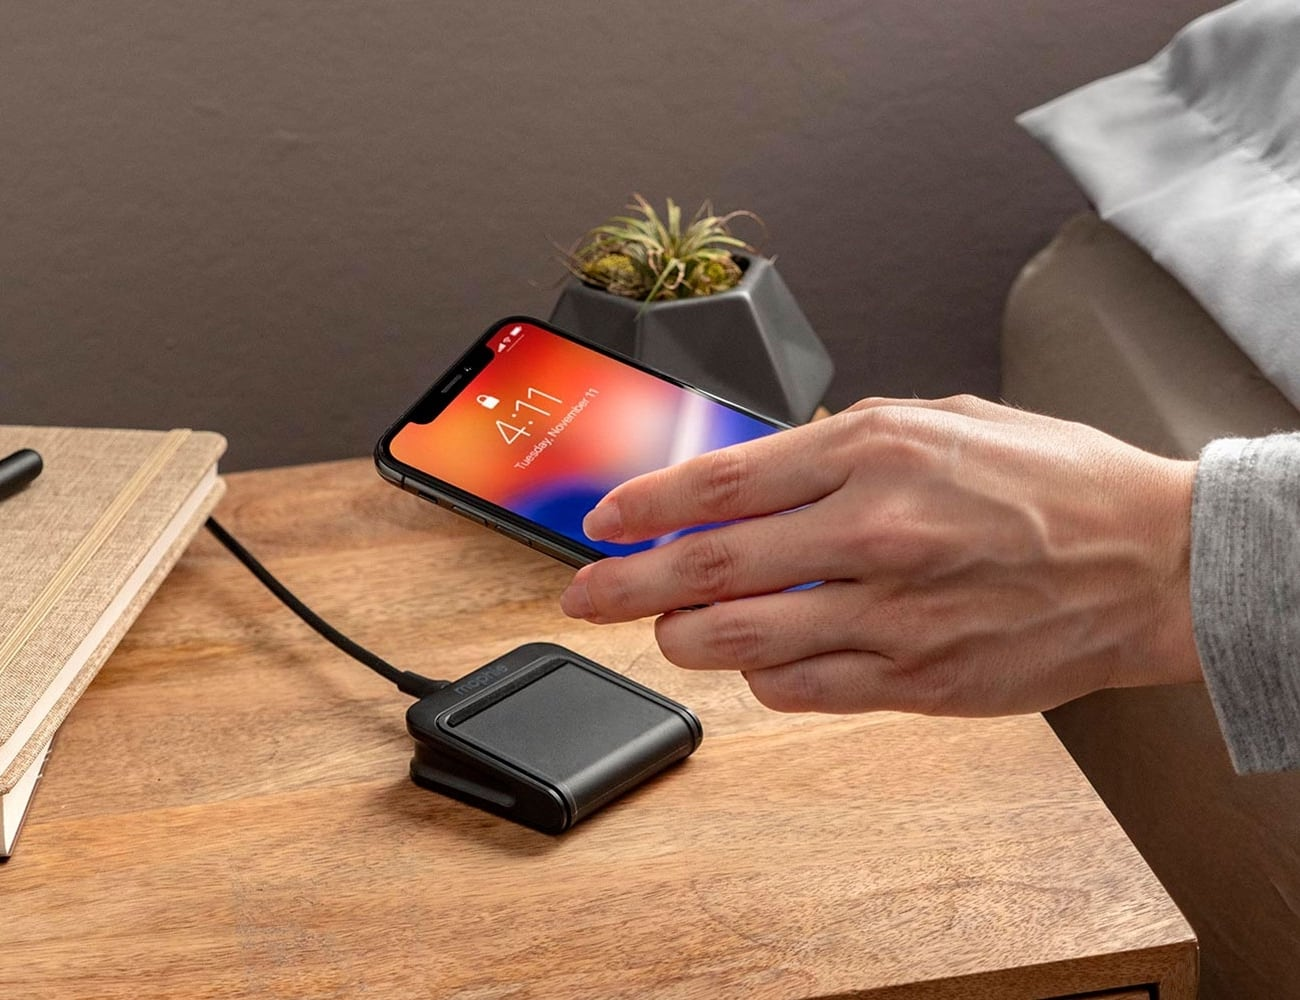 mophie charge stream pad mini Qi Wireless Charger starts charging your phone immediately